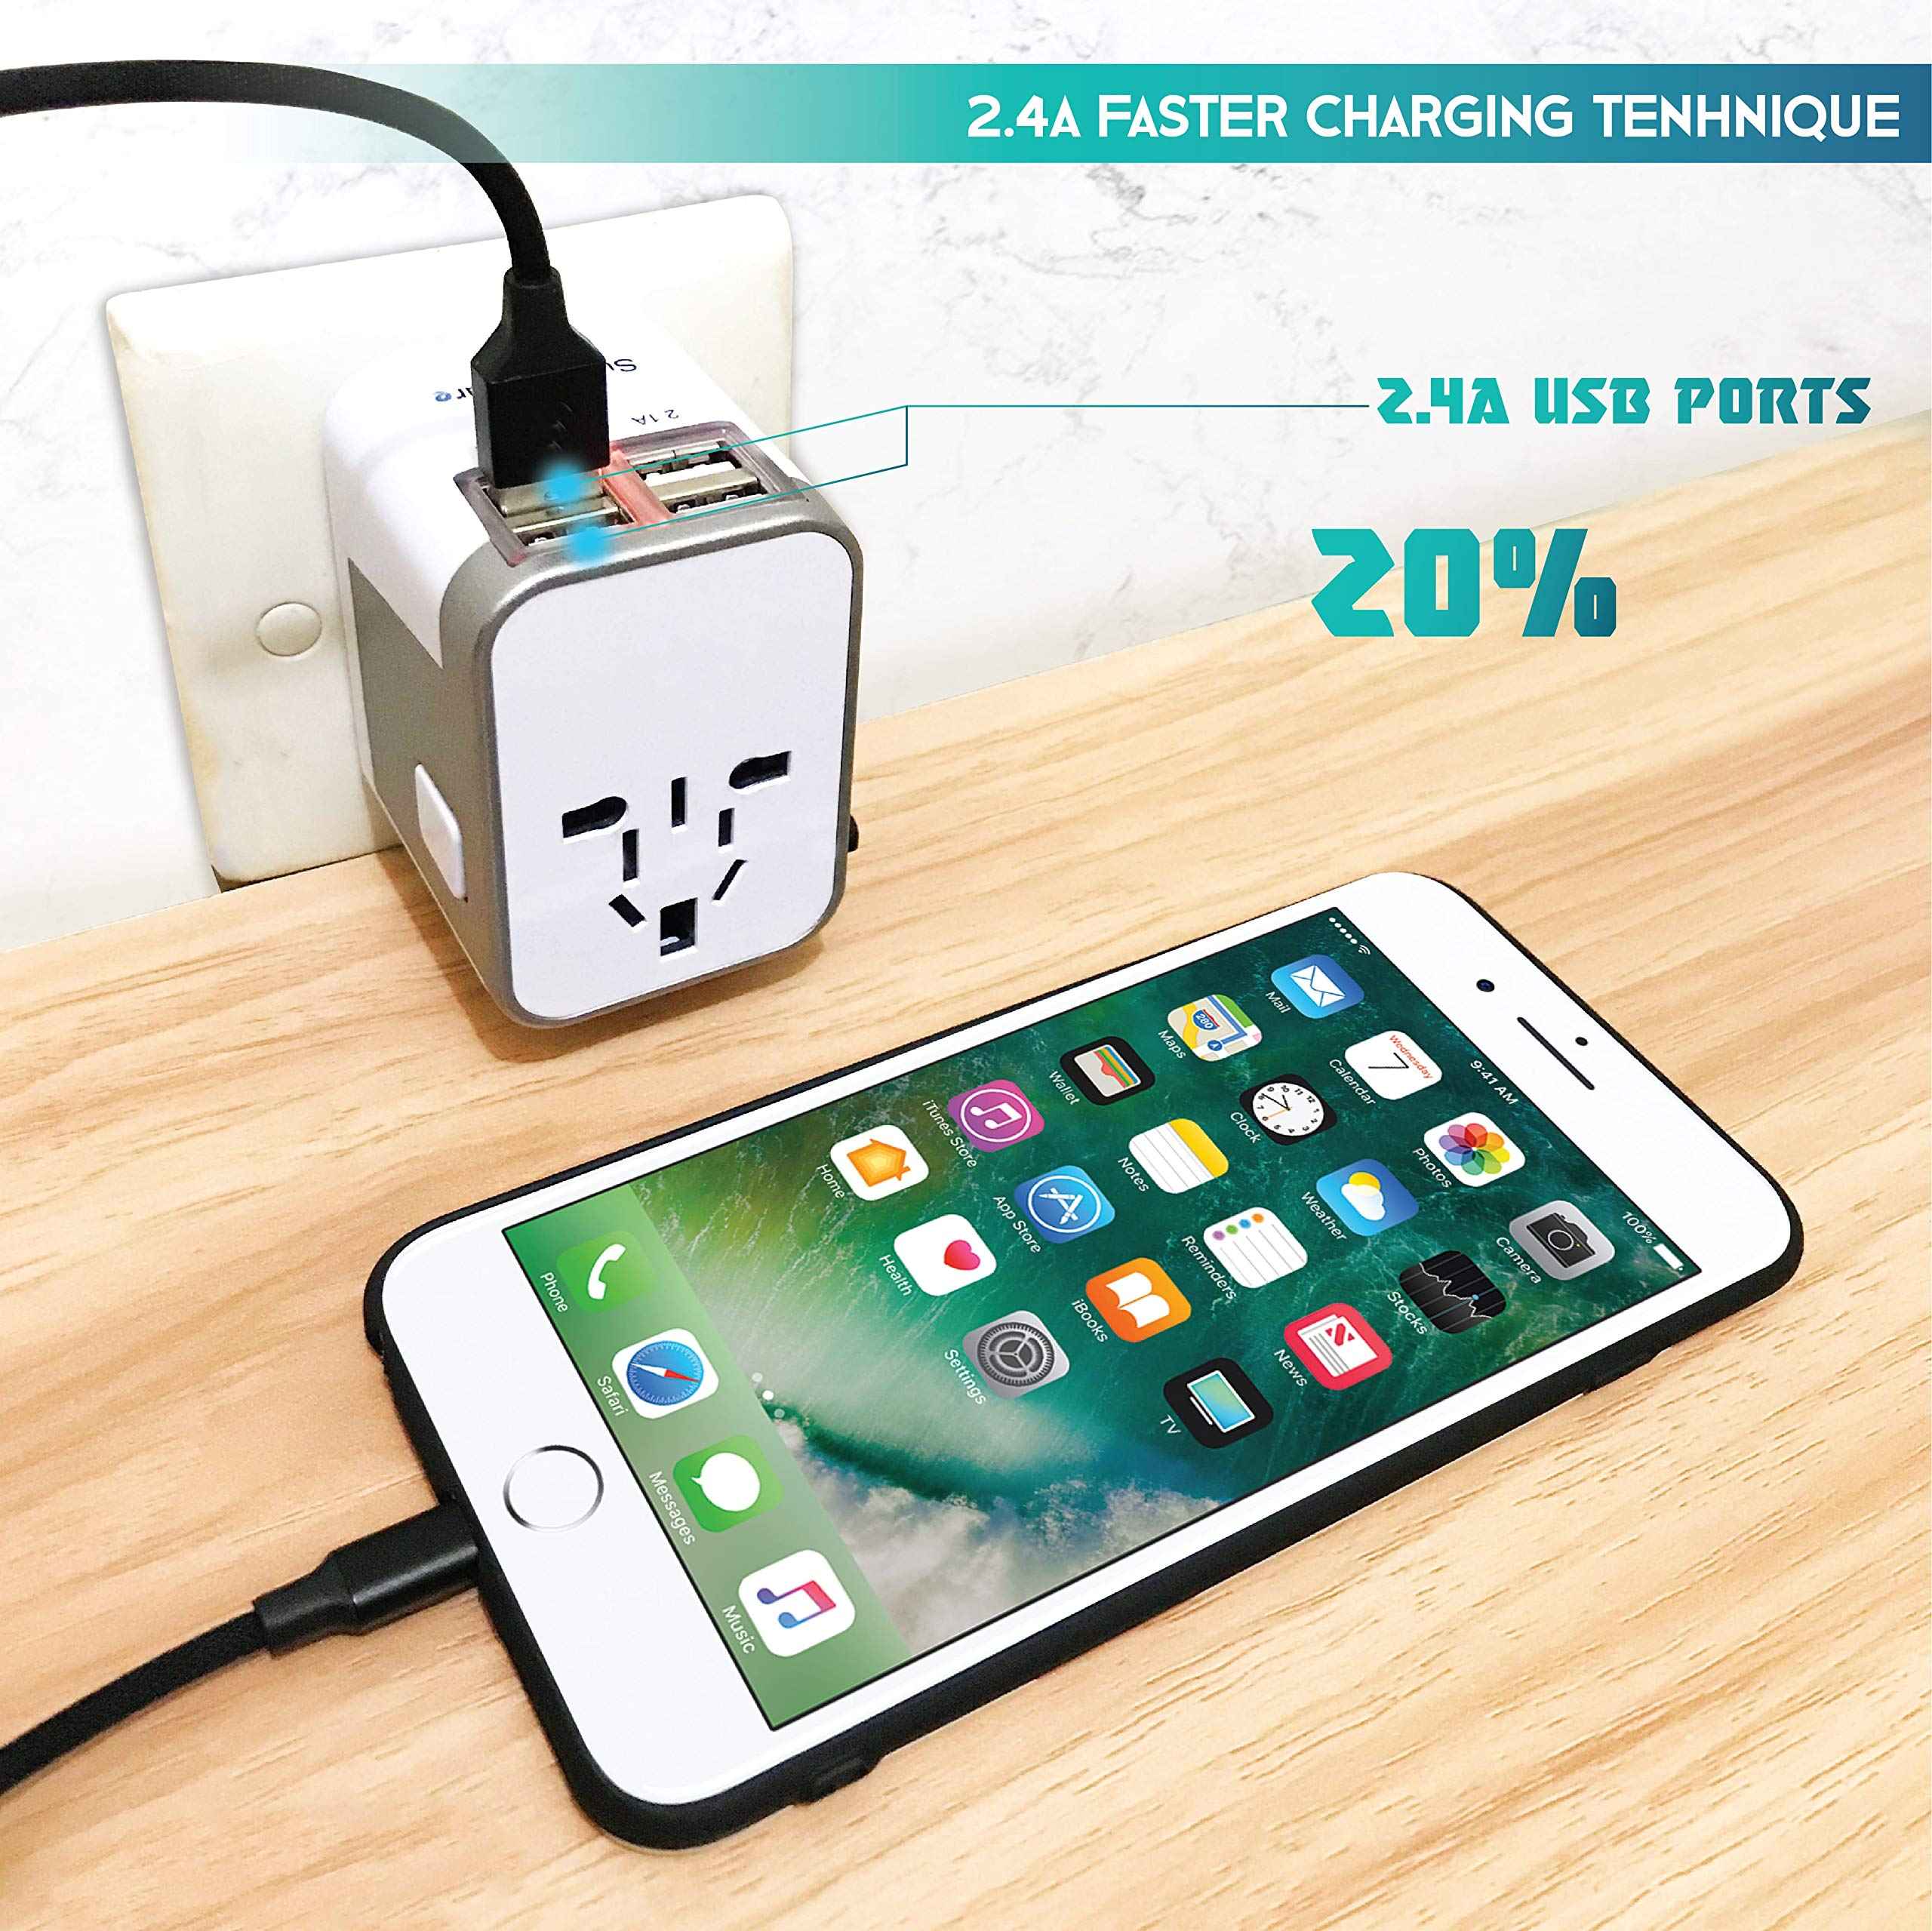 Power Plug Adapter - International Travel - (Pack of 2) w/4 USB Ports Work for 150+ Countries - 220 Volt Adapter - Travel Adapter Type C Type A Type G Type I f for UK Japan China EU Europe European by   SublimeWare   (Image #7)